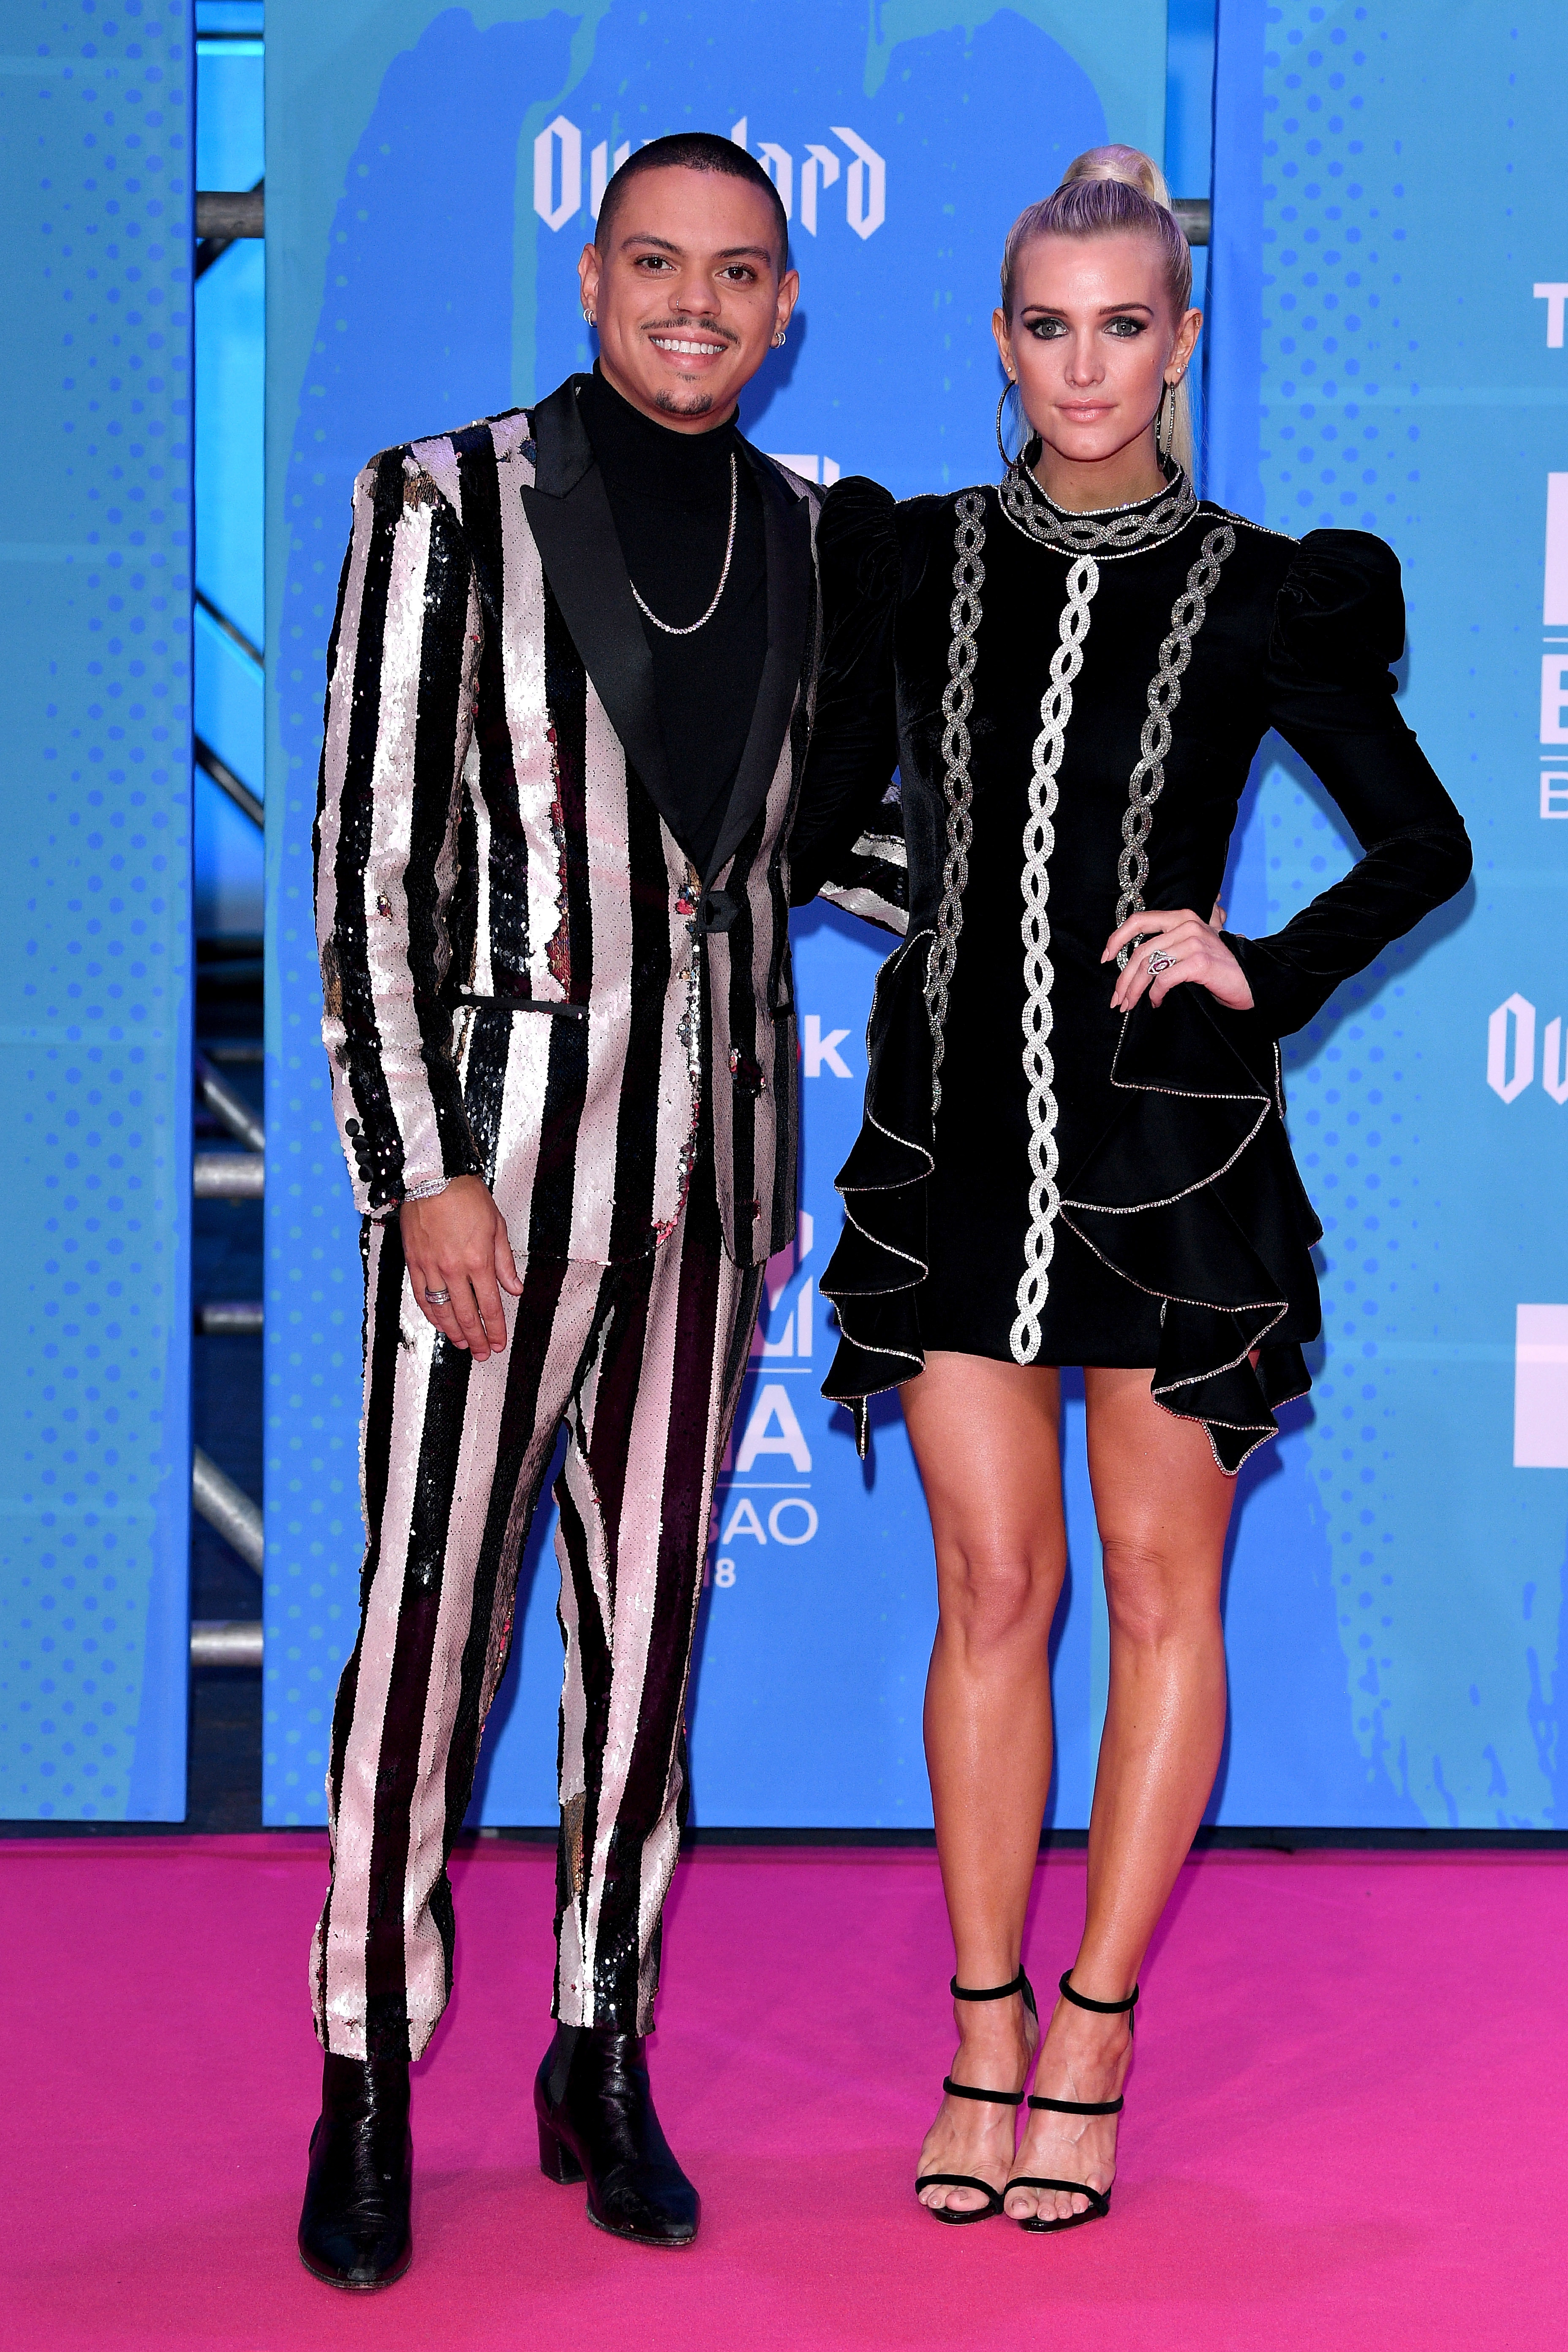 Evan Ross and Ashlee Simpson Ross arrive at the MTV Europe Music Awards in Bilbao, Spain, on Nov. 4, 2018.